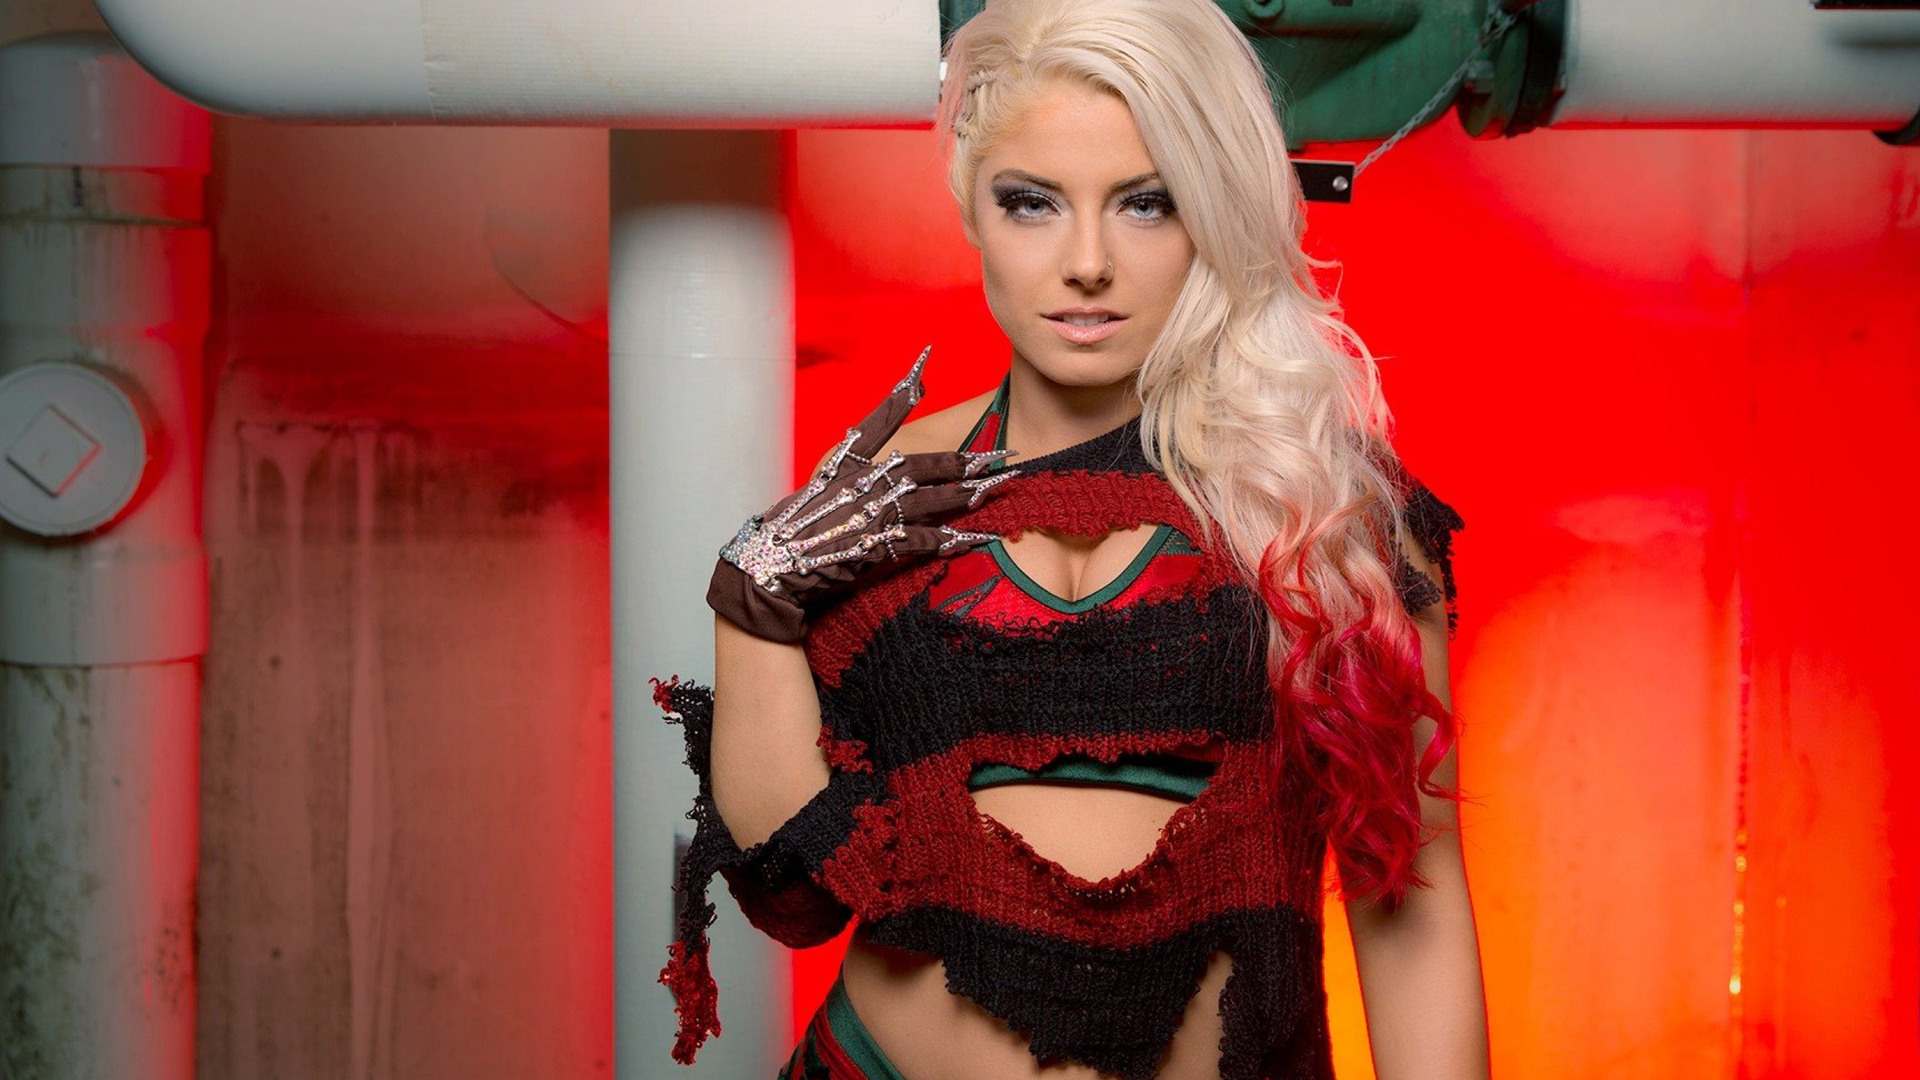 1920x1080 alexa bliss wwe laptop full hd 1080p hd 4k wallpapers alexa bliss wwe 86g voltagebd Images